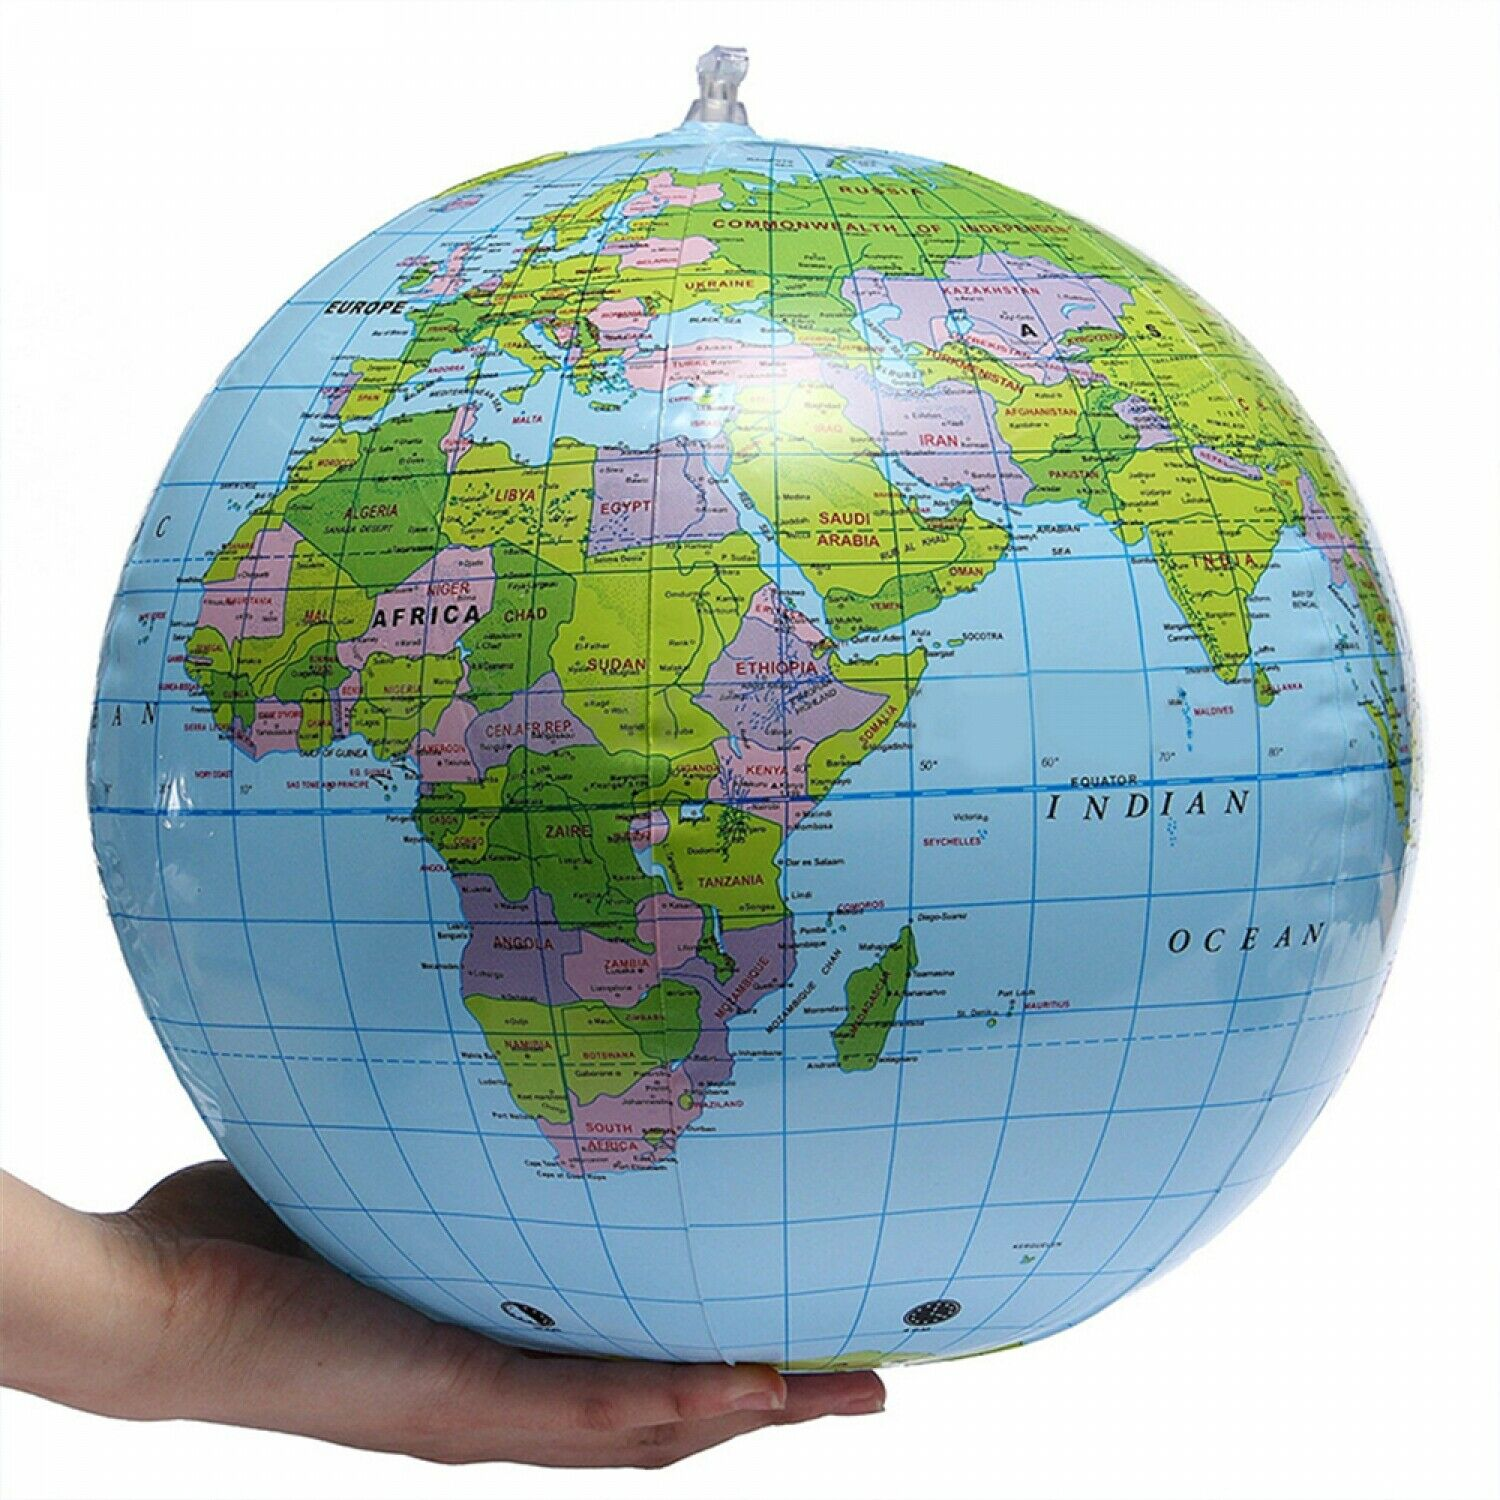 30cm Inflatable Blow Up World Globe Earth Map Ball Educational Planet Earth Ball Ocean Kid Learning Geography Toy Home 1